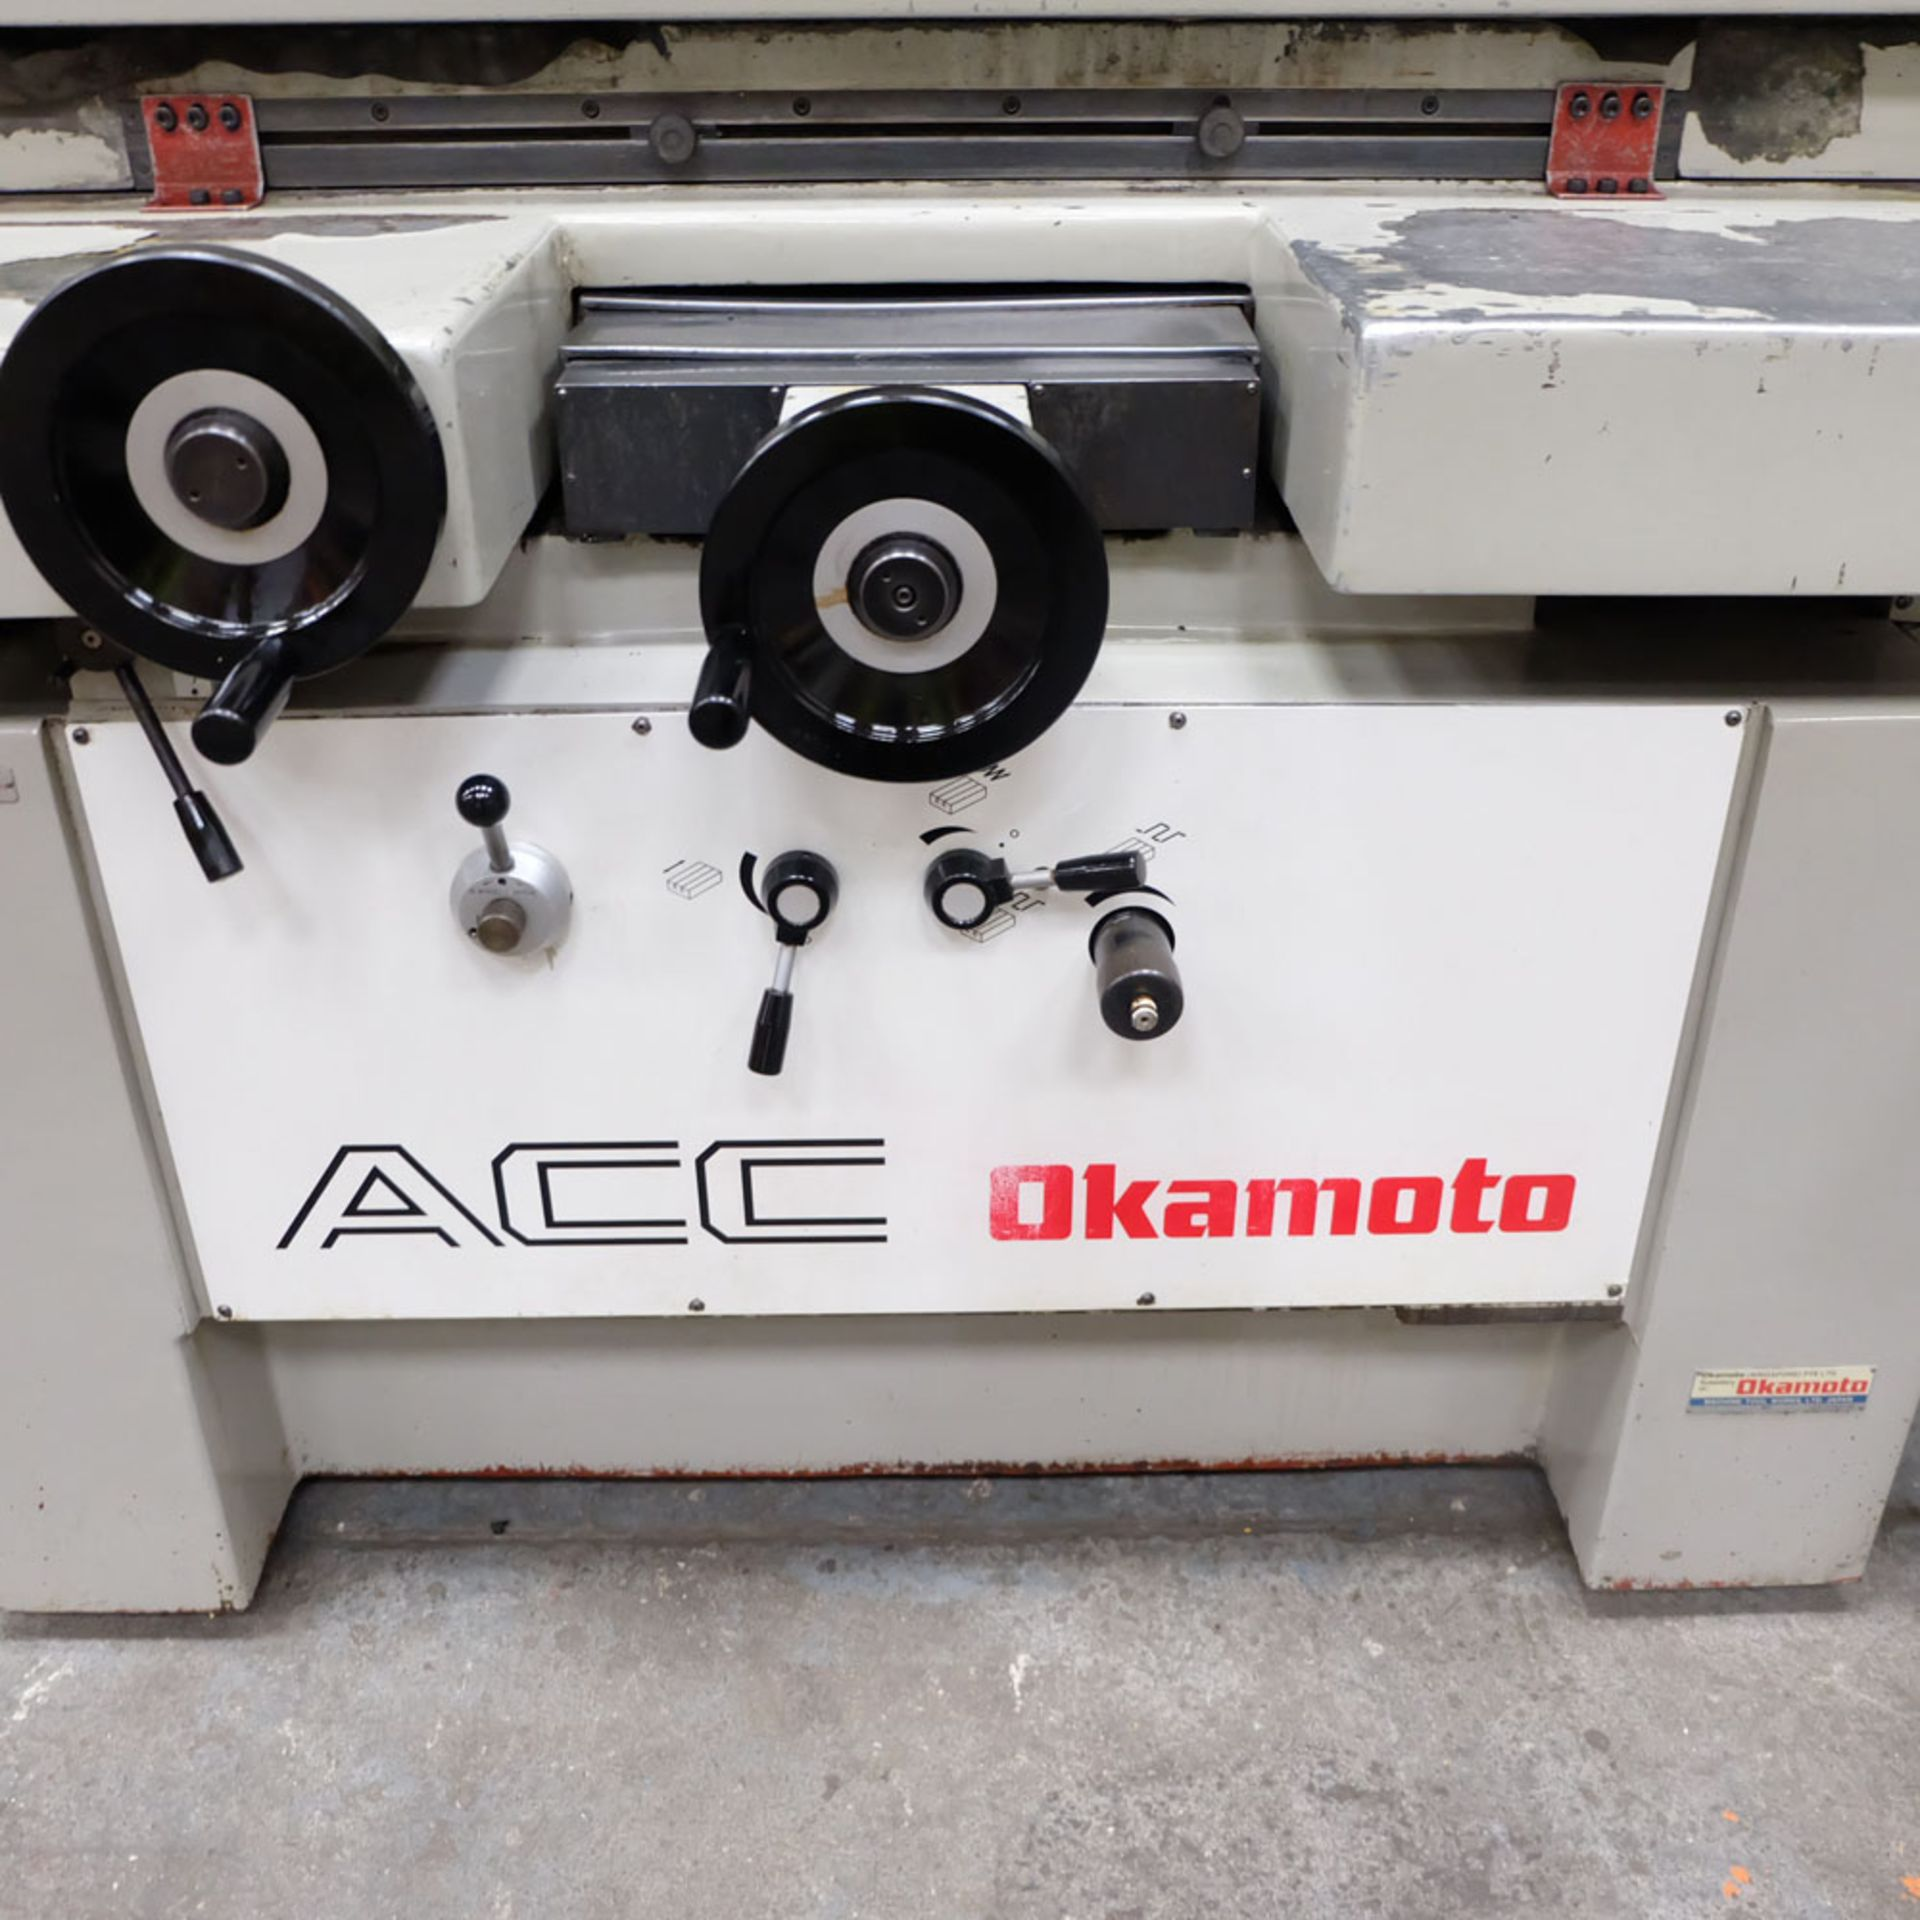 """Okamoto Type ACC-84 DX Precision Surface Grinding Machine. Grinding Capacity: 32"""" x 16""""(805 x 400mm) - Image 4 of 8"""